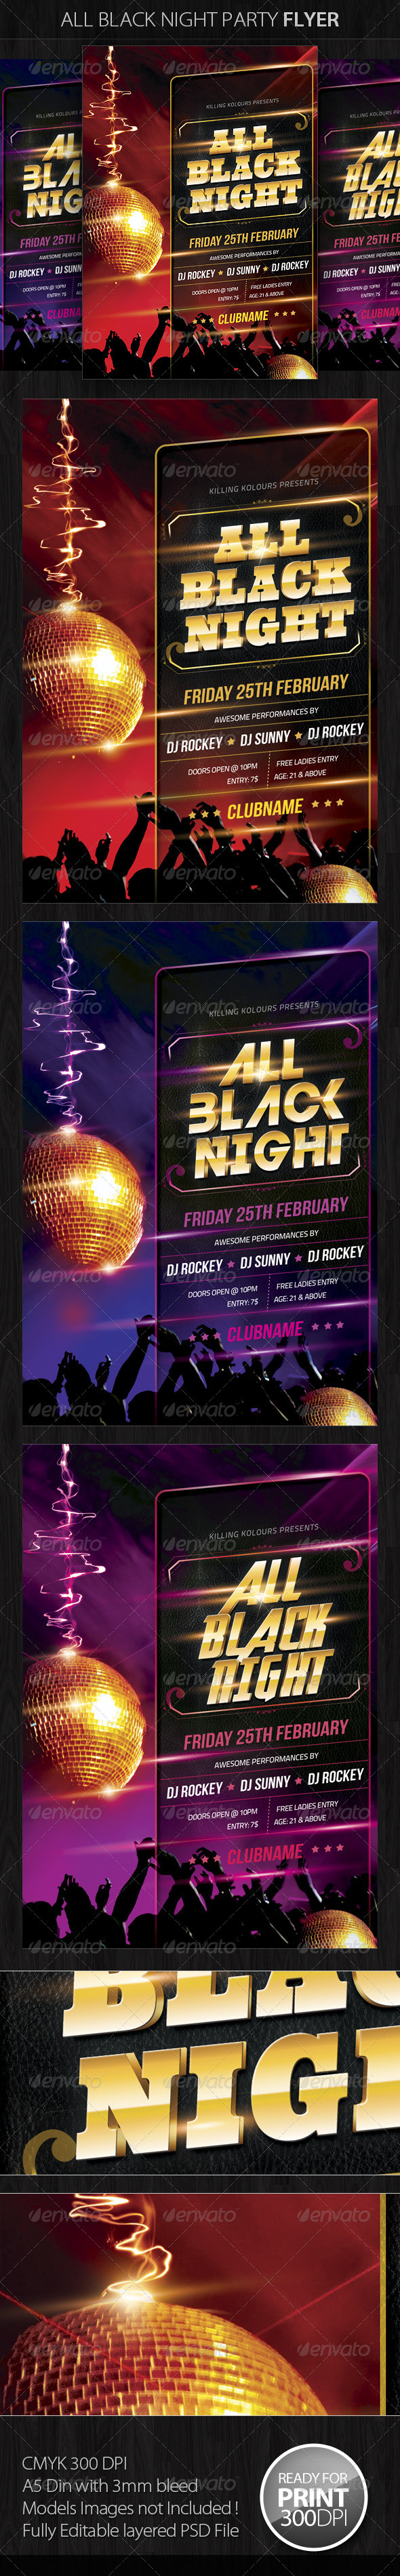 All Black Night Party Flyer